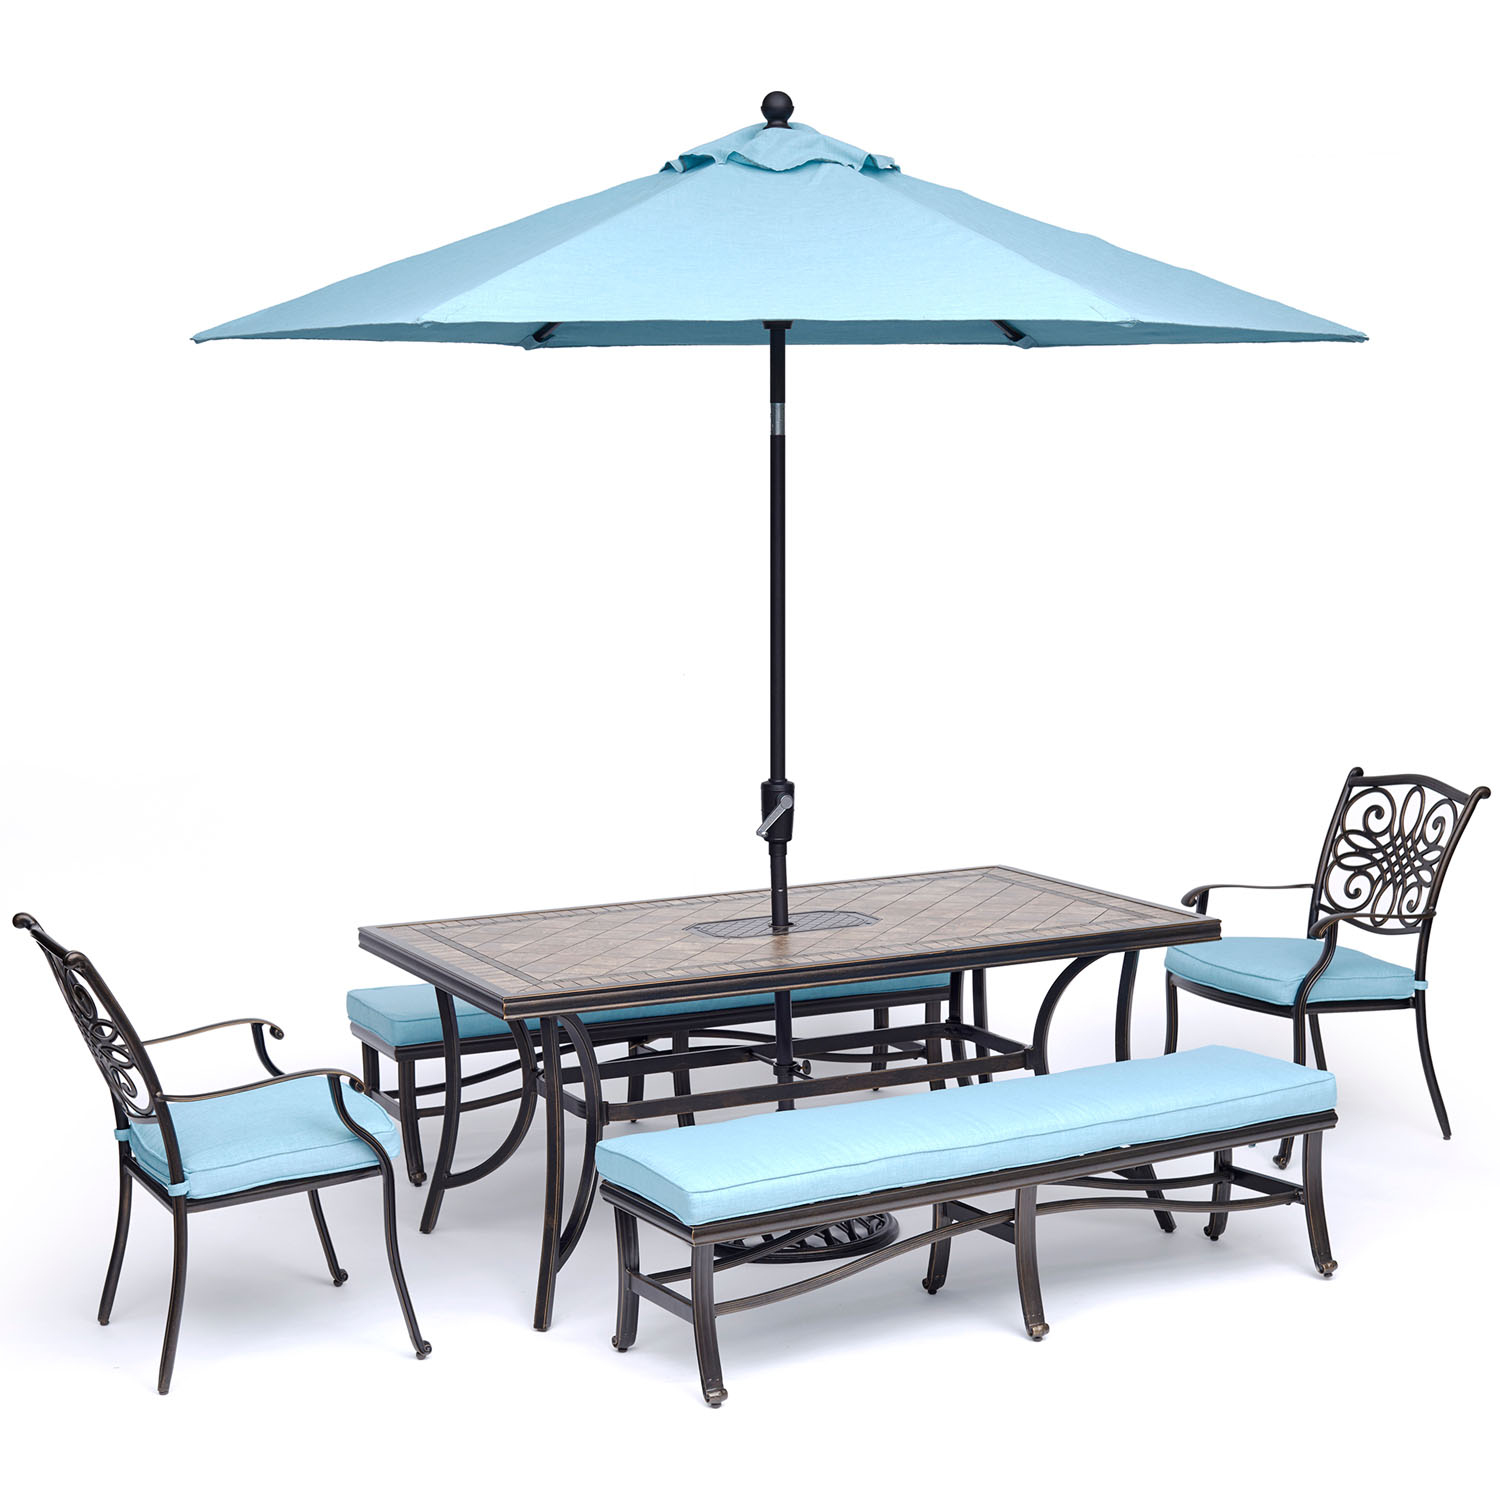 """Hanover Monaco 5-Piece Outdoor Dining Set with 2 Chairs, 2 Benches, 40"""" x 68"""" Tile-Top Table, 9-Ft. Table Umbrella and Stand"""